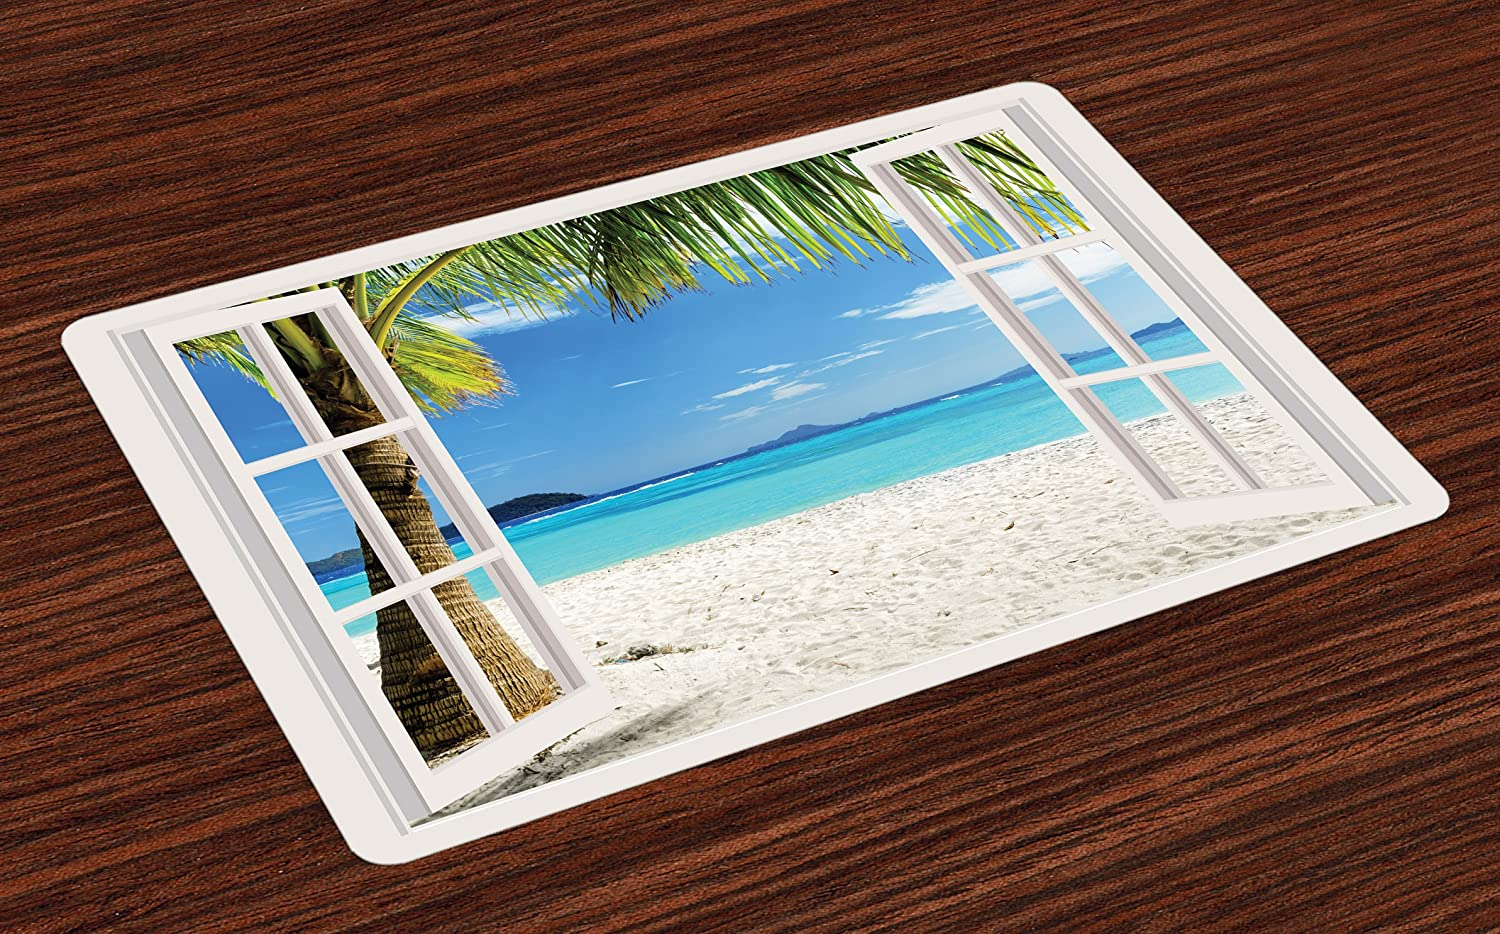 Ambesonne Turquoise Place Mats Set of 4, Tropical Palm Trees on Island Ocean Beach Through White Wooden Windows, Washable Fabric Placemats for Dining Room Kitchen Table Decor, Blue Green and White